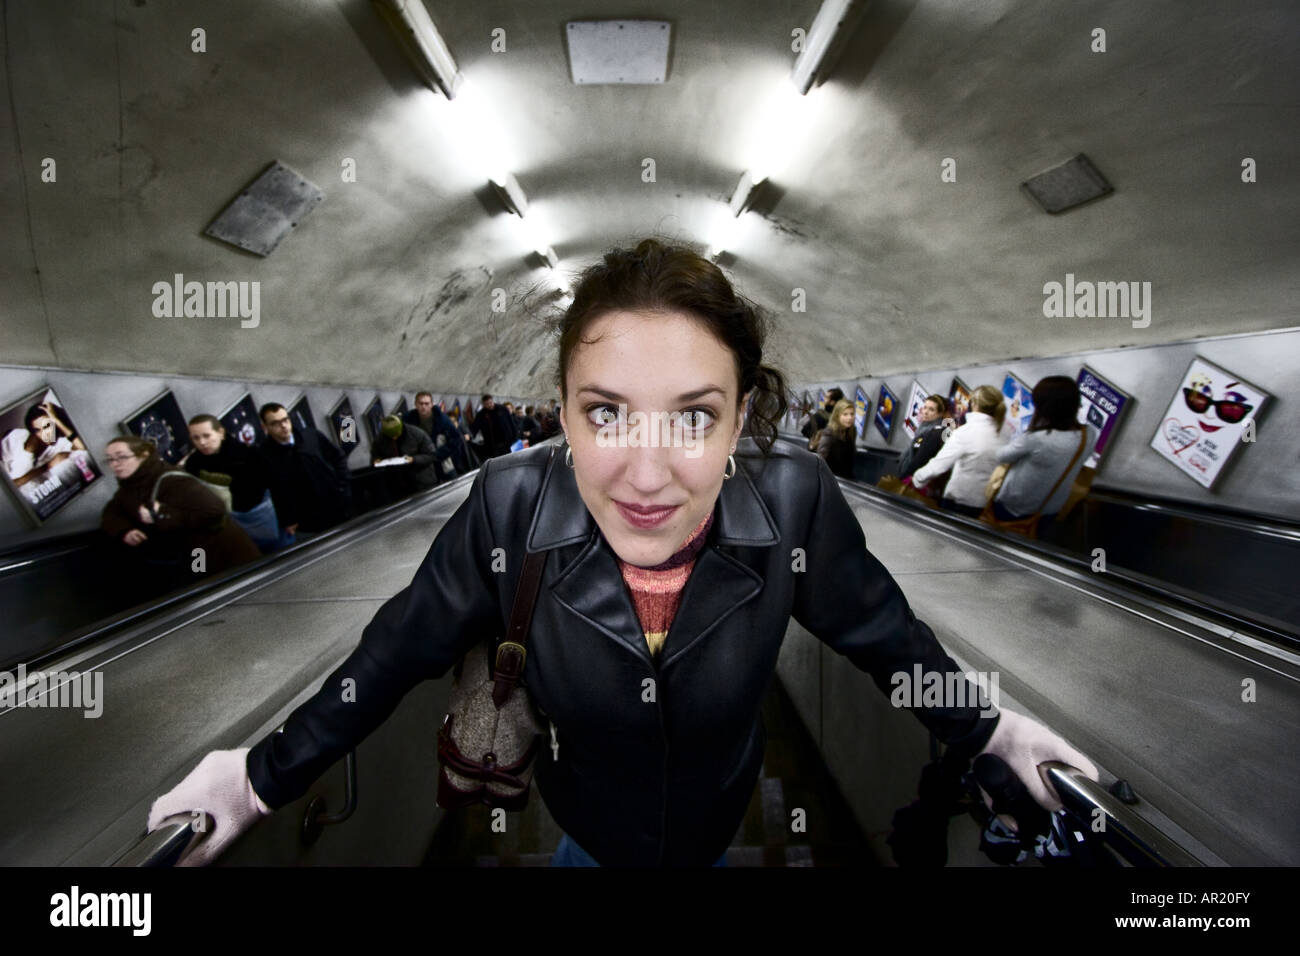 Woman on escalator leading to an London Underground tube station Only woman in foreground is model released 12 06 - Stock Image